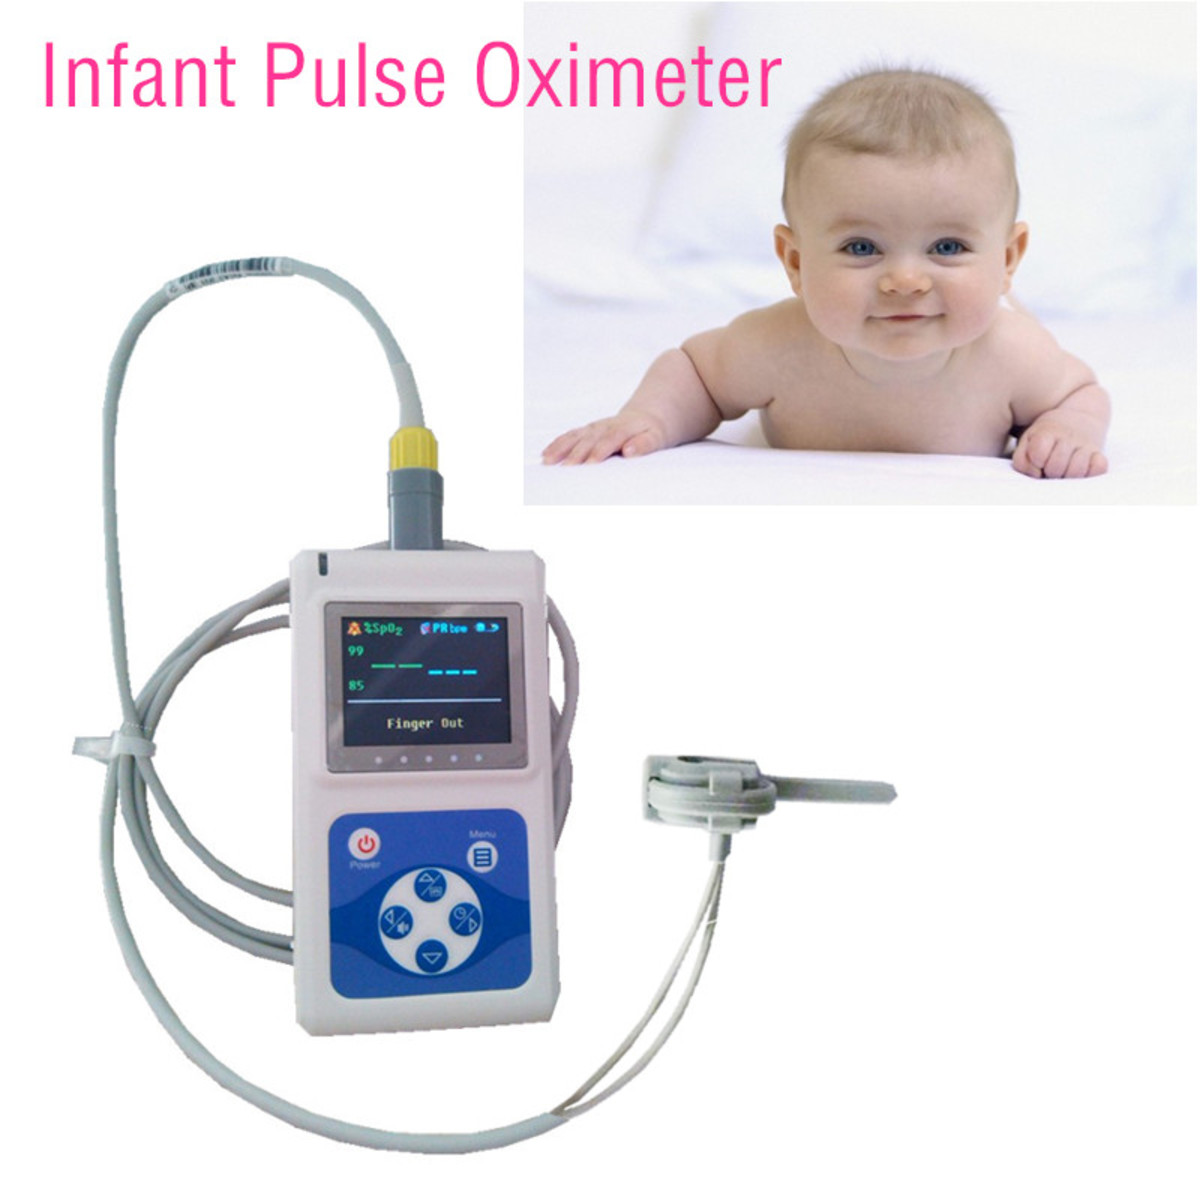 Blood Oxygenation In Newborns More Complicated Than You